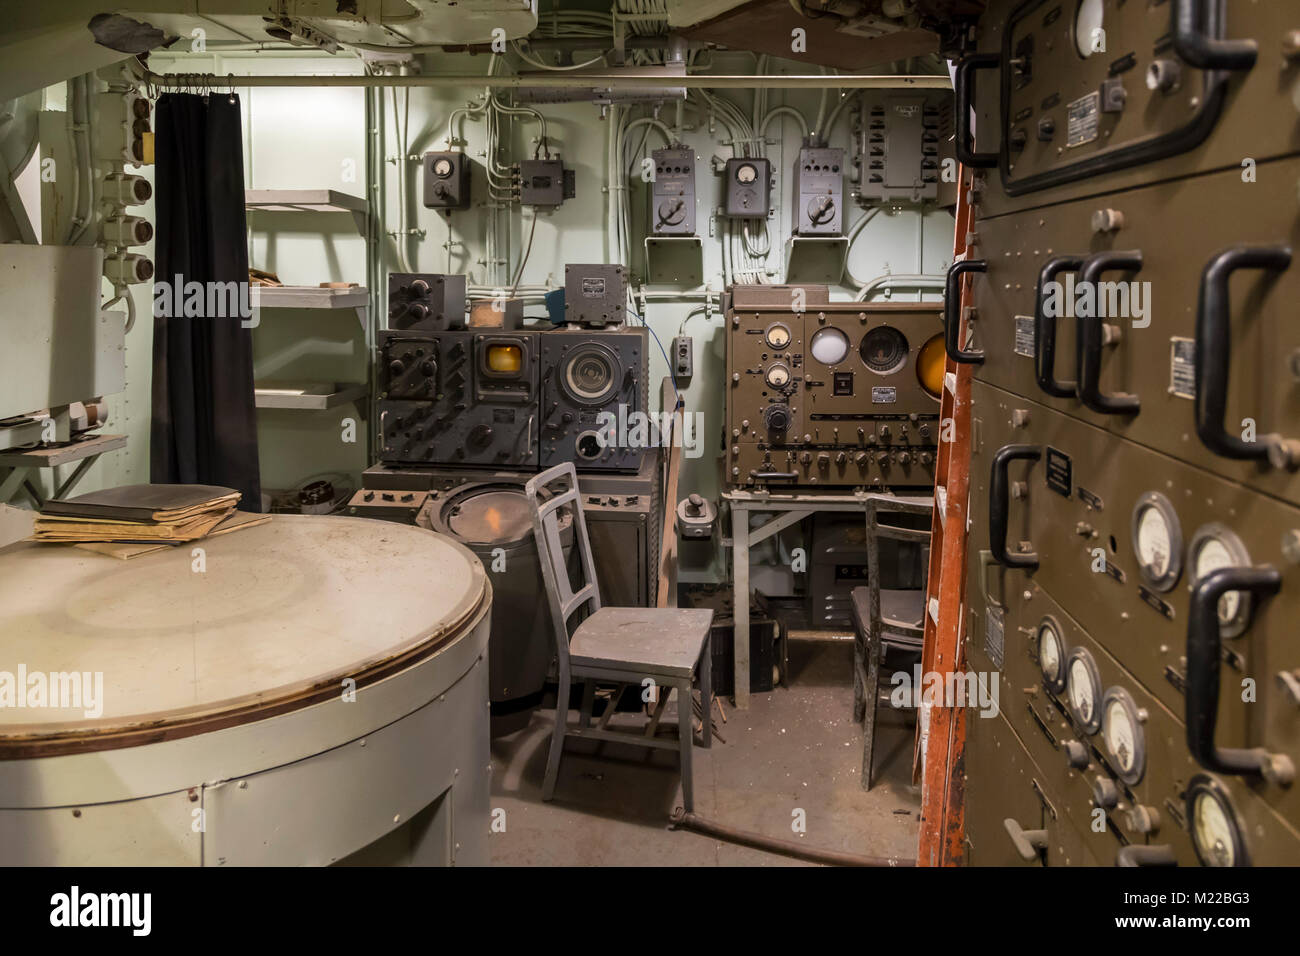 Houston, Texas - The auxiliary combat information center on the Battleship Texas, which served in World War I and - Stock Image